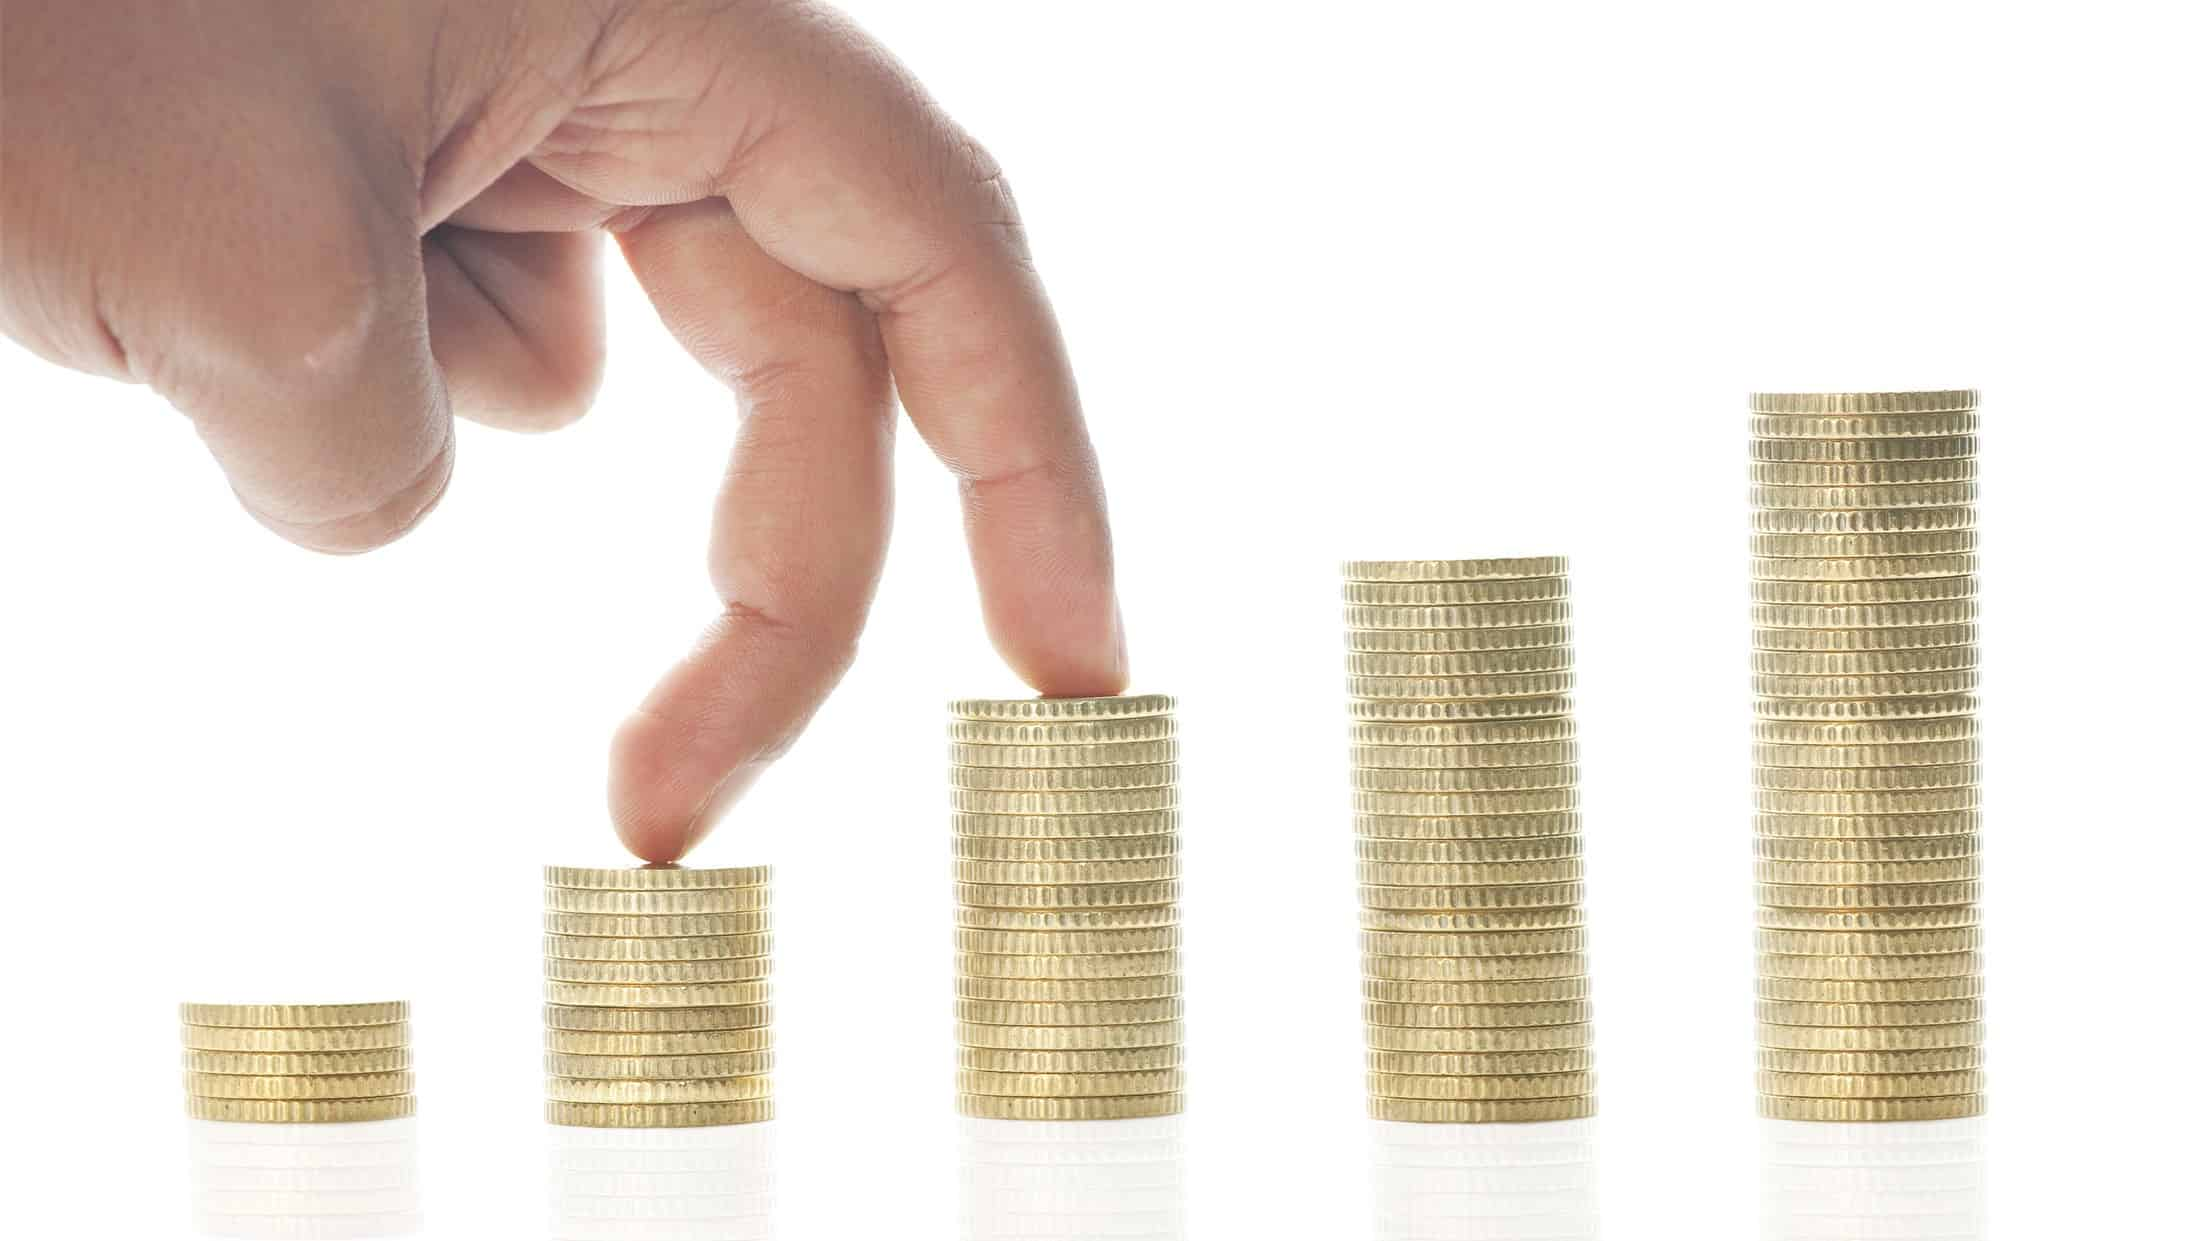 asx share price growth represented by fingers walking along growing piles of coins